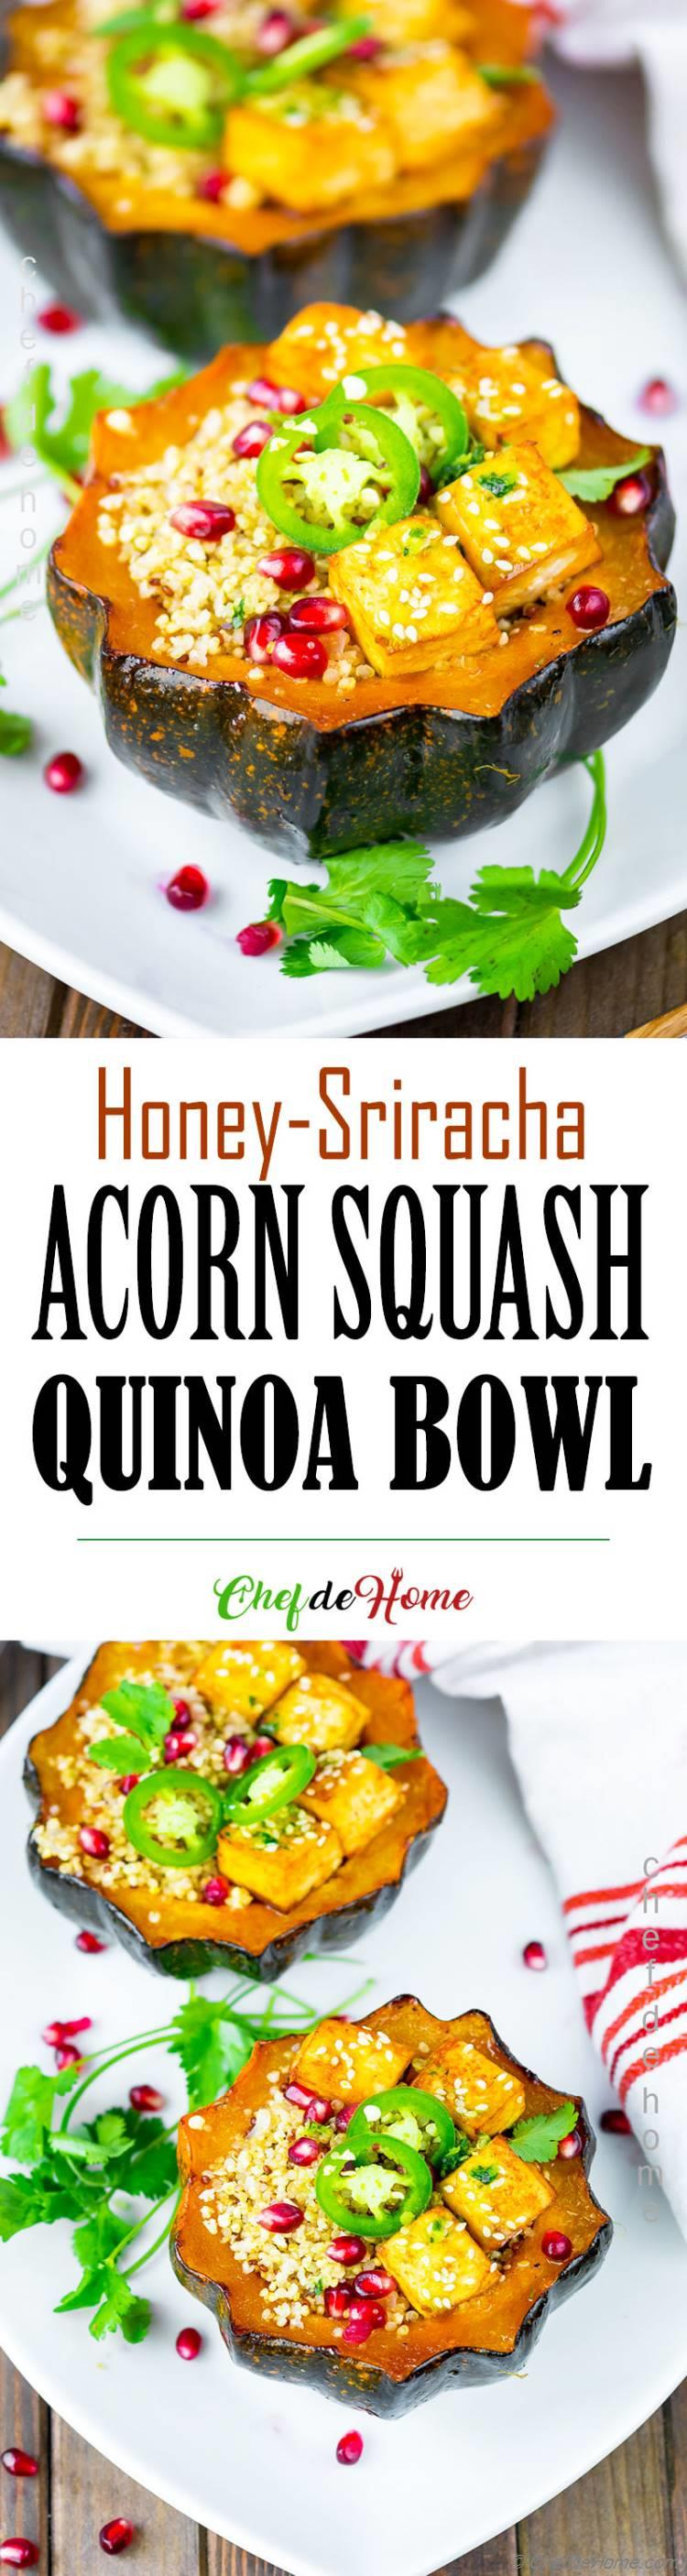 Roasted Acorn Squash Quinoa Bowl